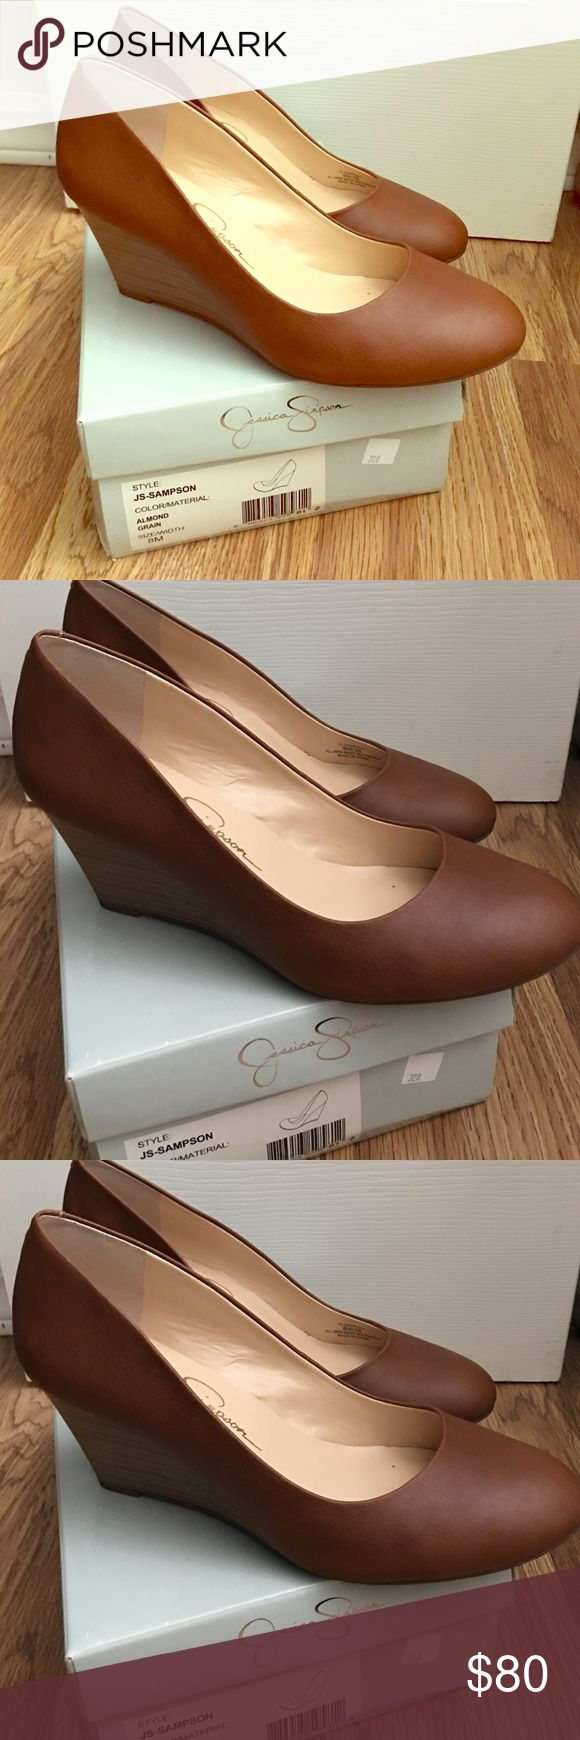 Jessica Simpson wedges - Brown - New - Size 8 Brand New, Jessica Simpson wedges, brown, size 8 Jessica Simpson Shoes Wedges